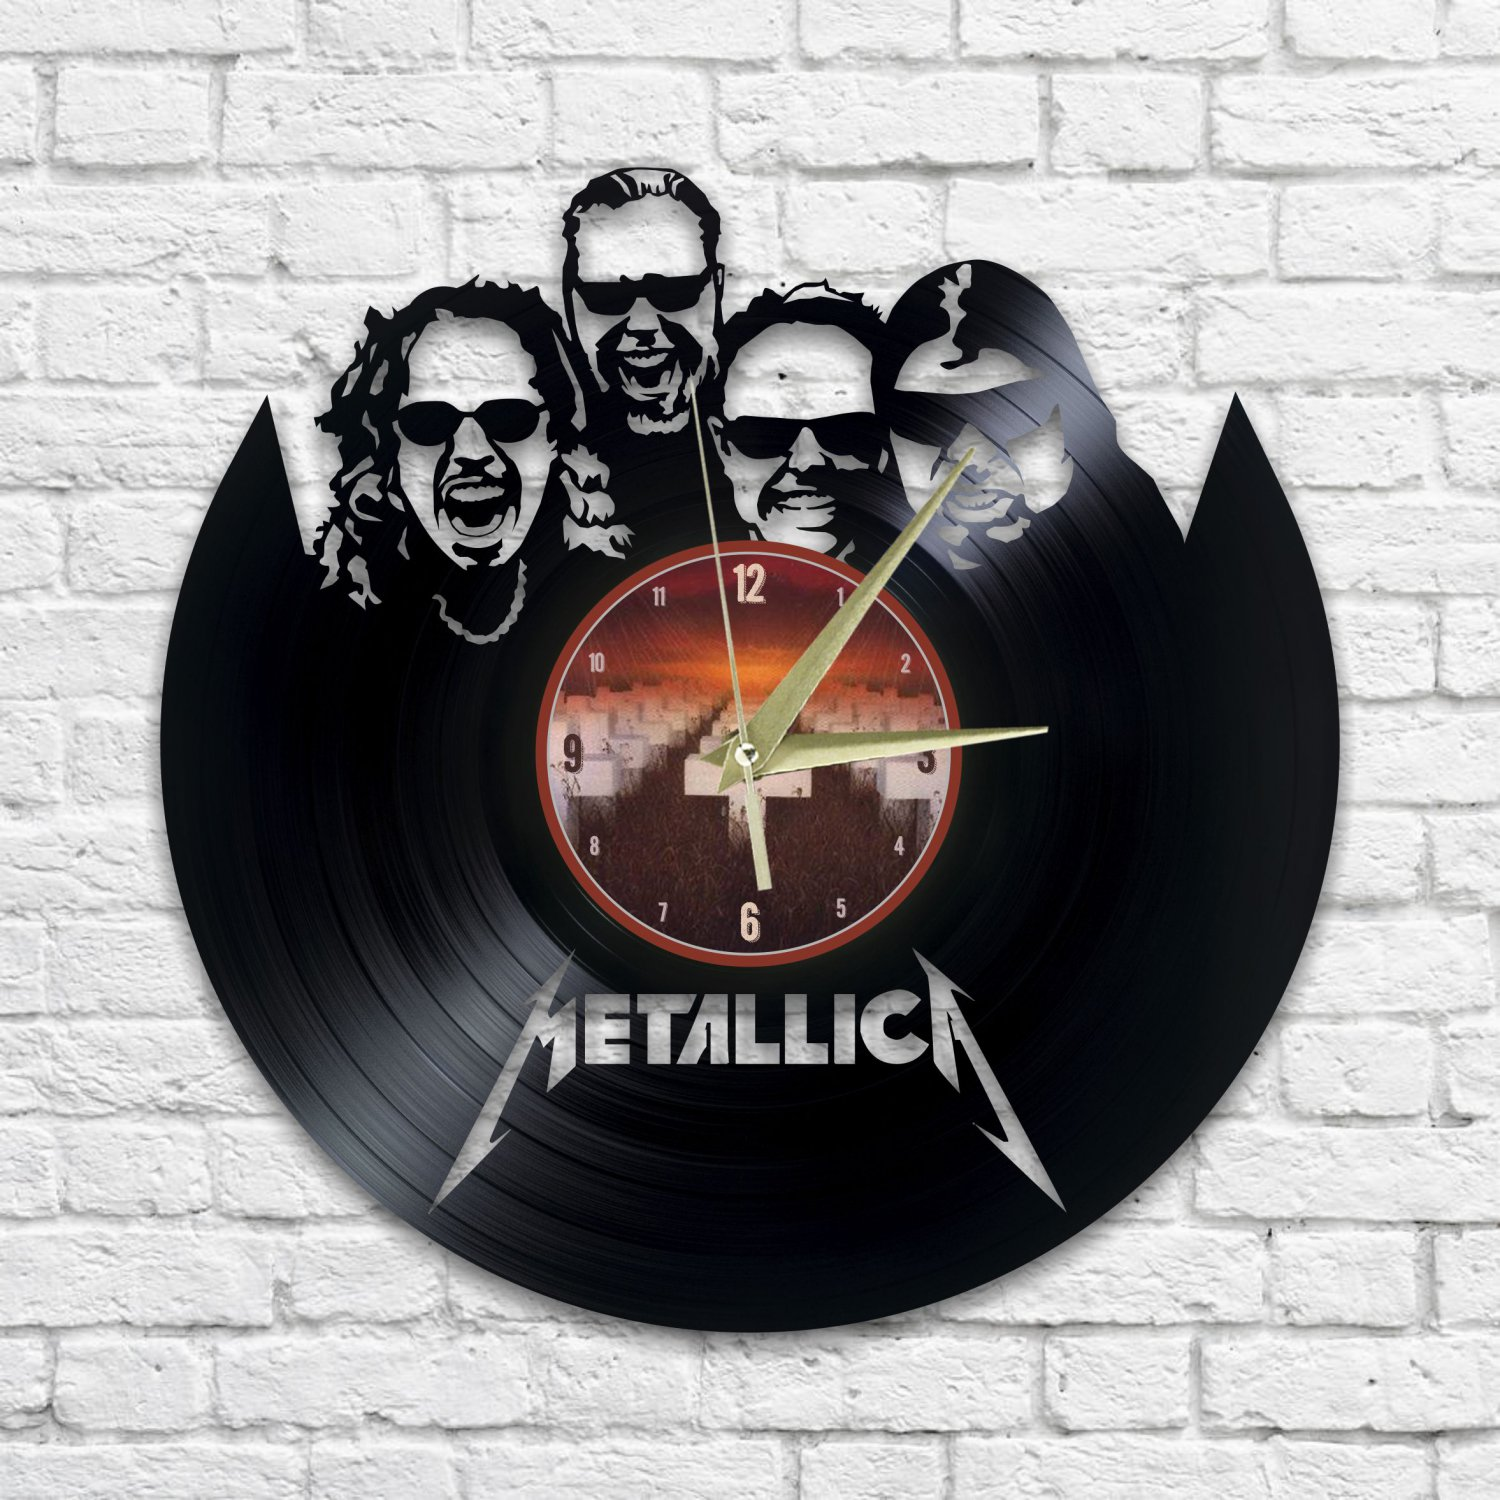 Metallica wall clock